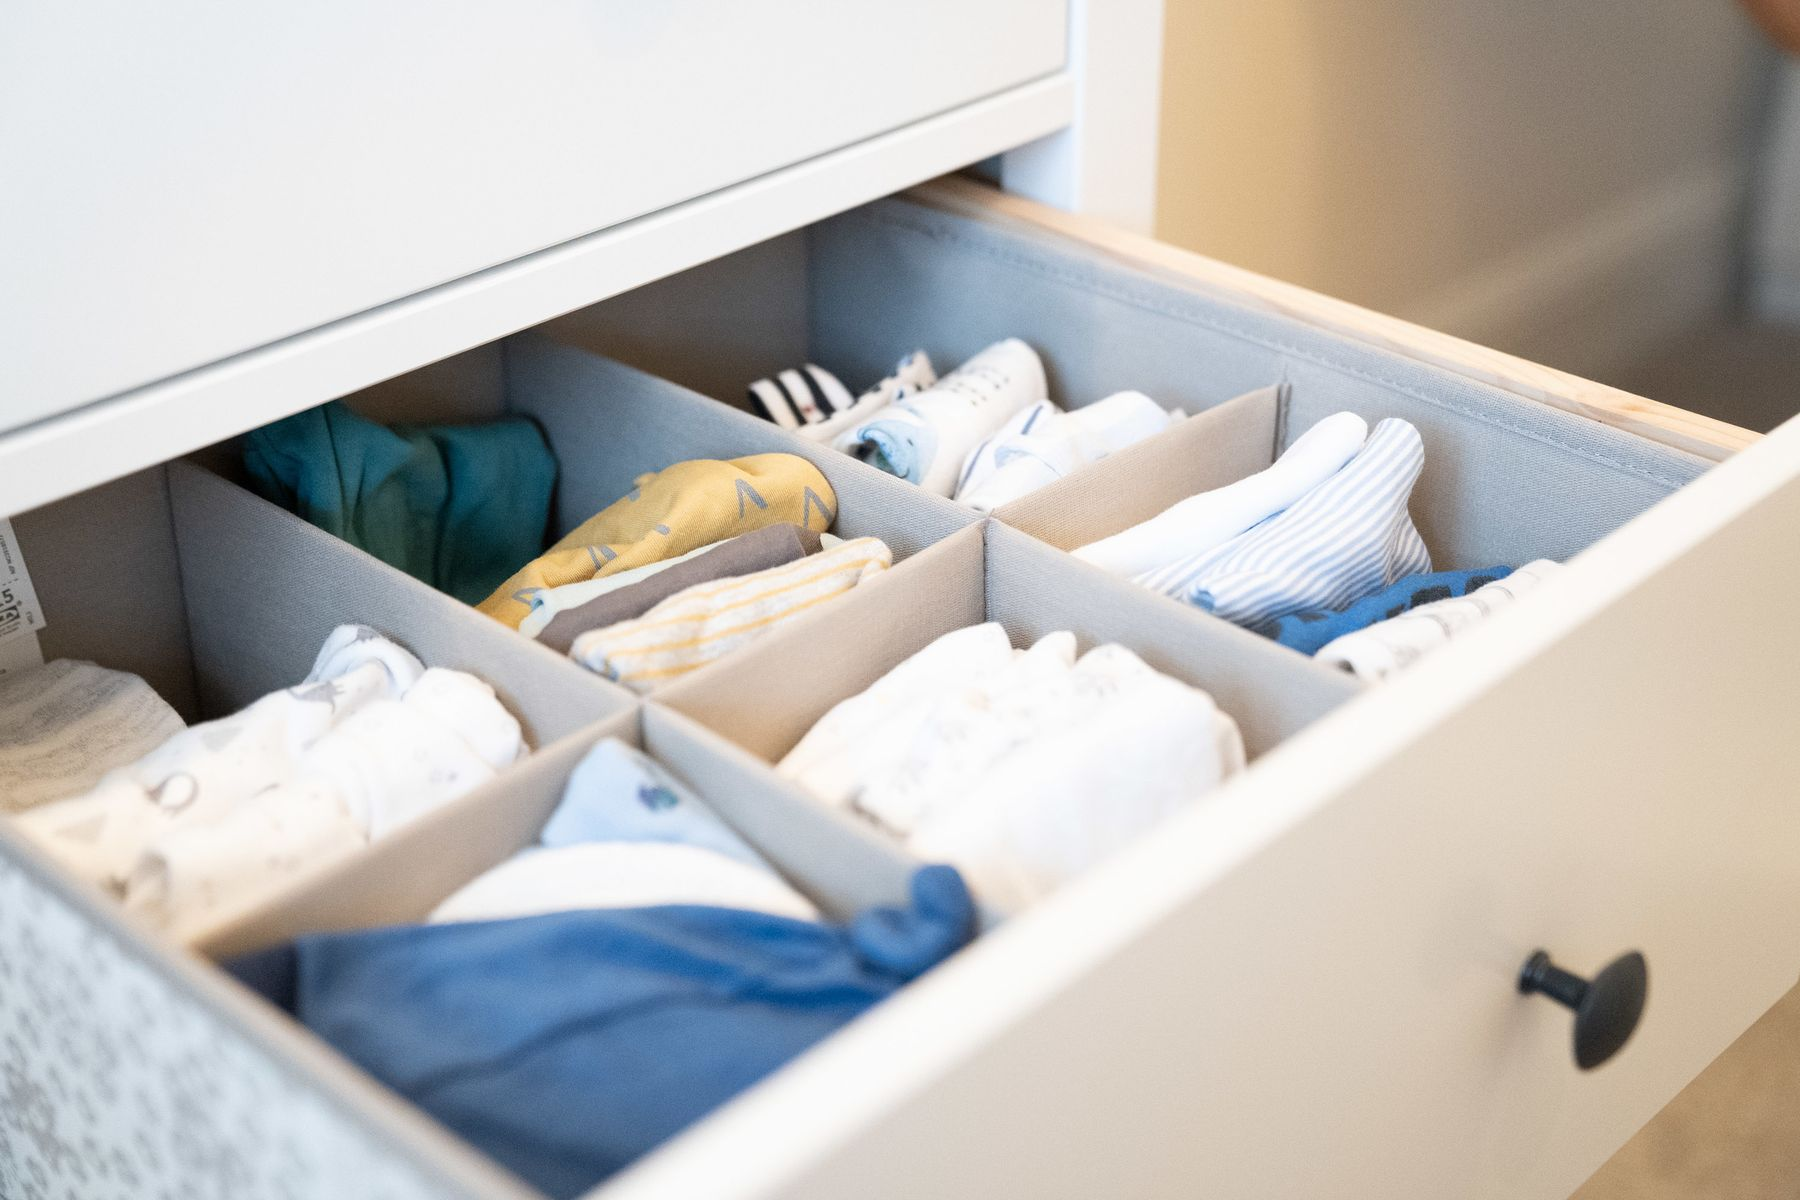 Open drawer containing linen